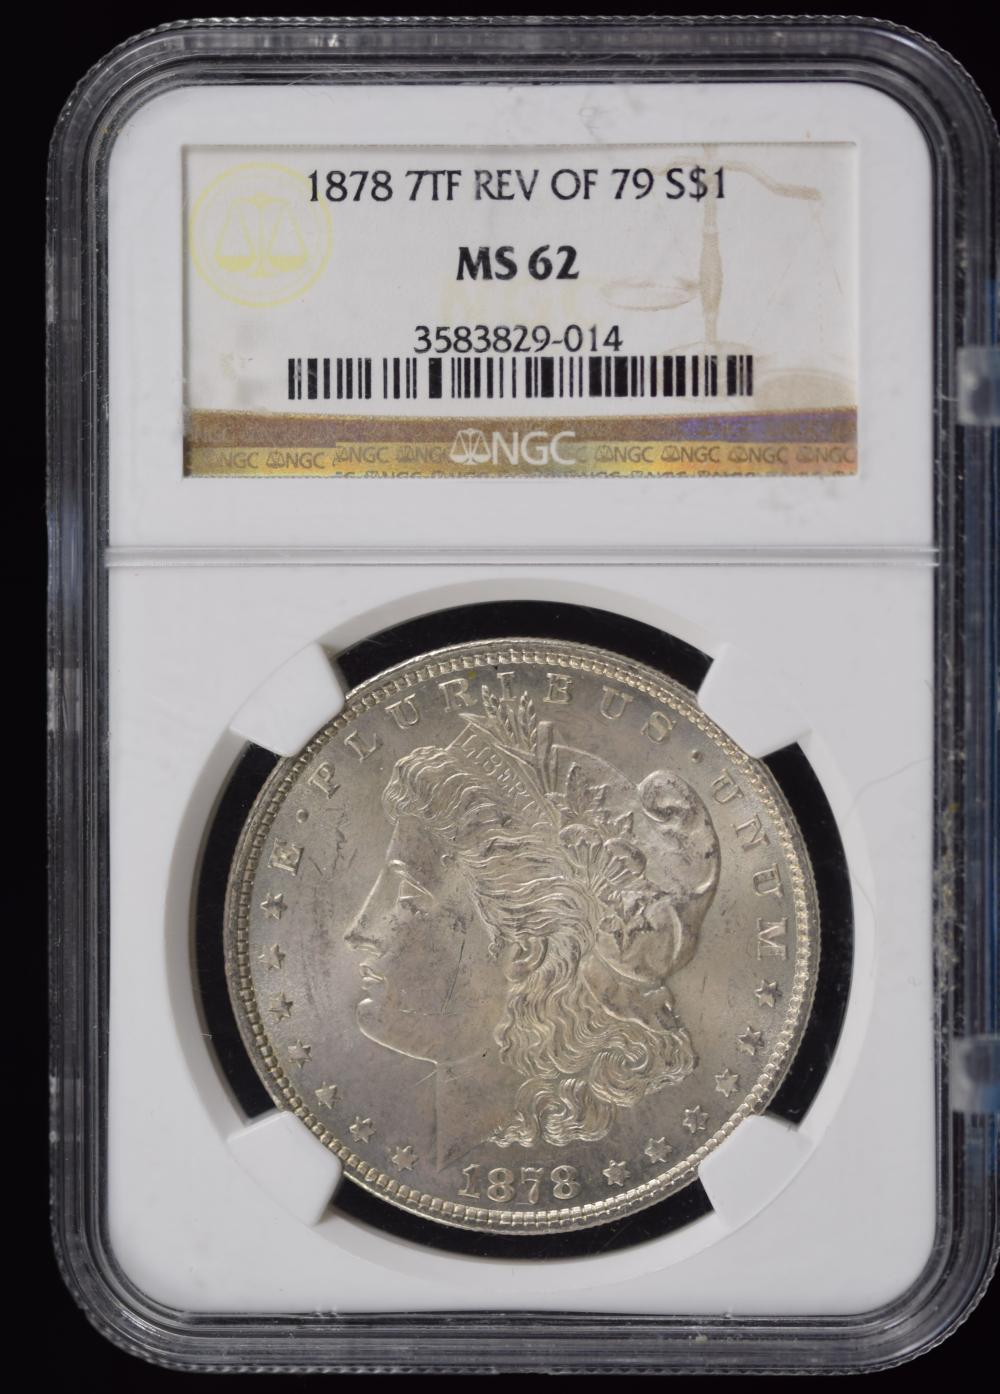 1878 7tf Rev 79 Morgan Dollar NGC MS-62